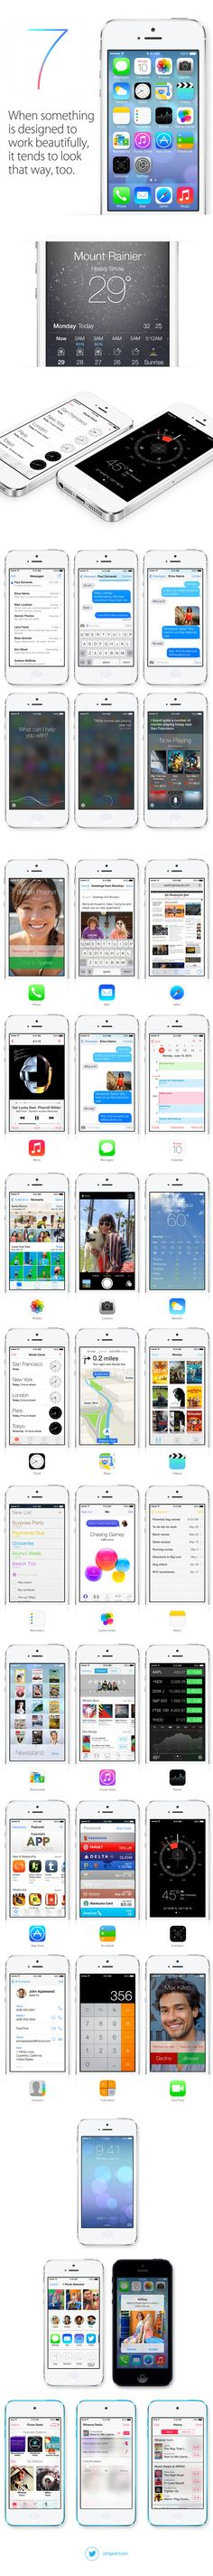 Apple iOS7 - new flat design